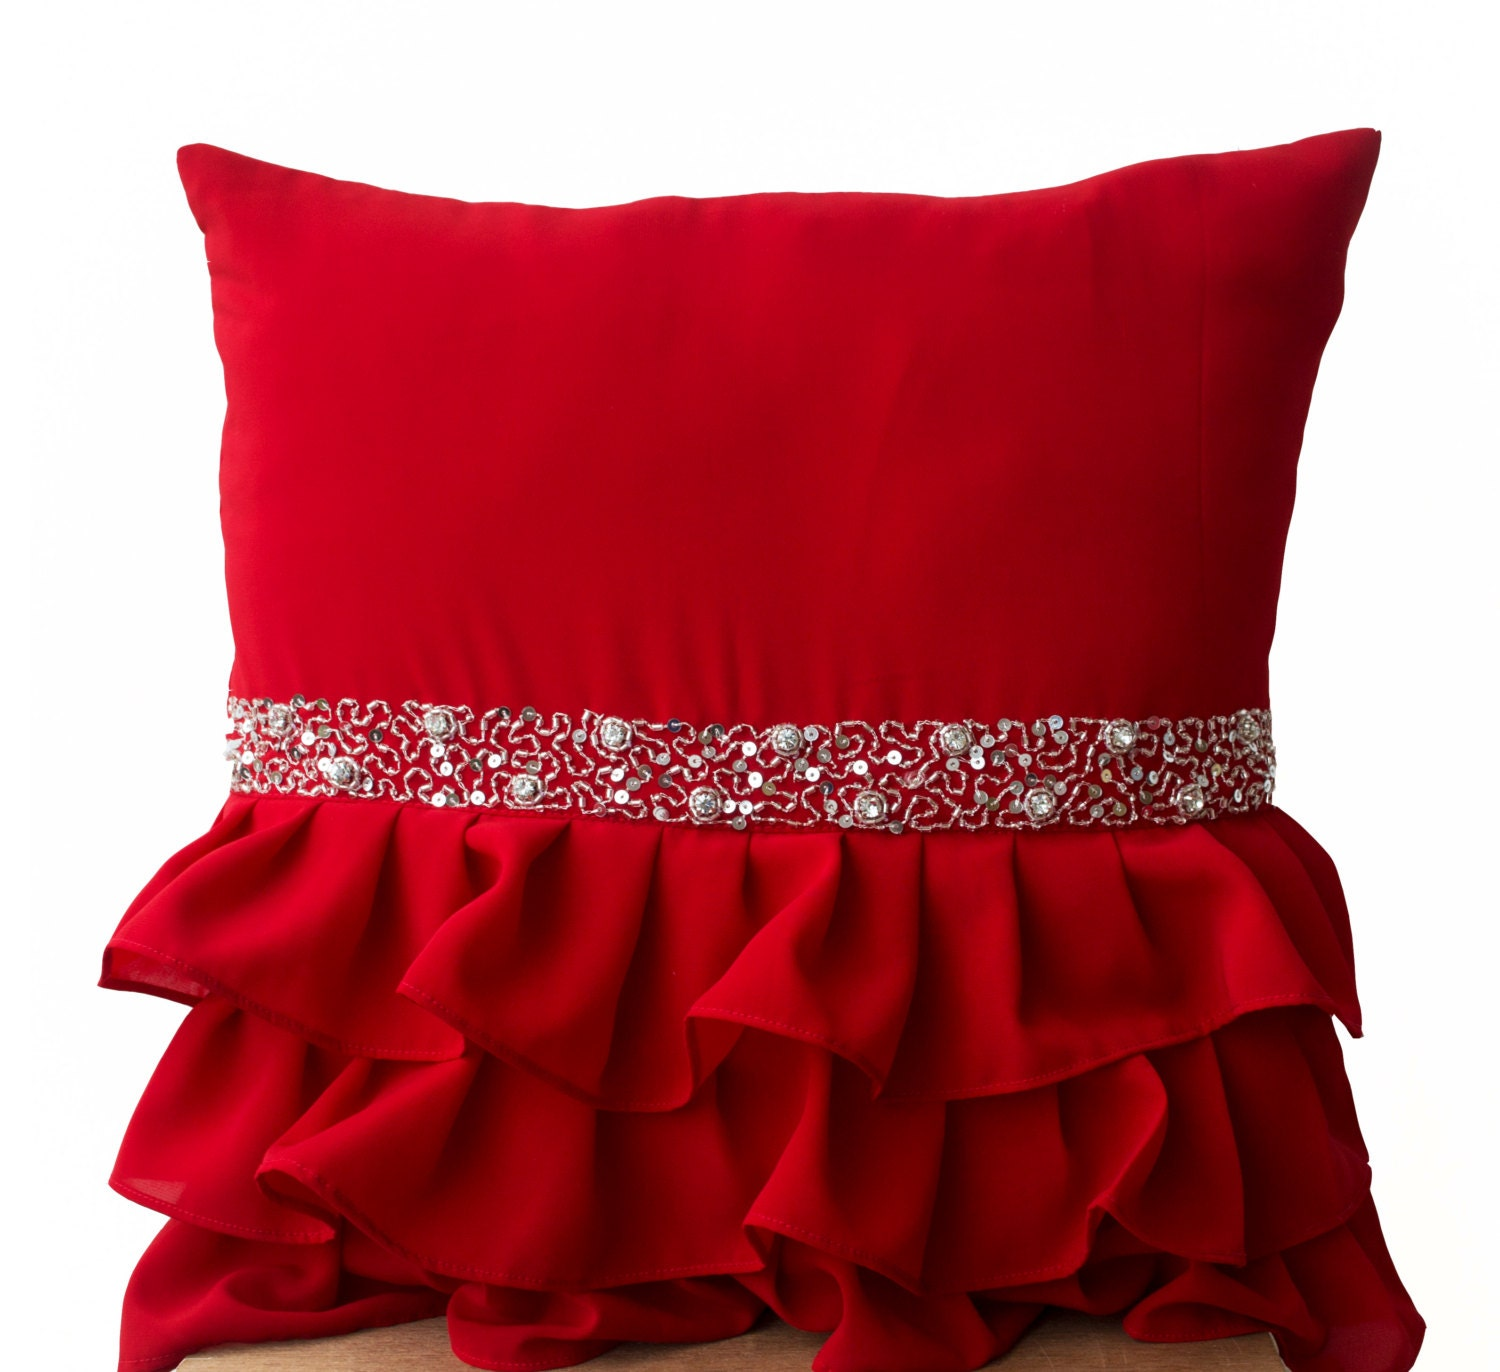 Elegant Red Ruffled Sequin Throw Pillow 16x16 Decorative